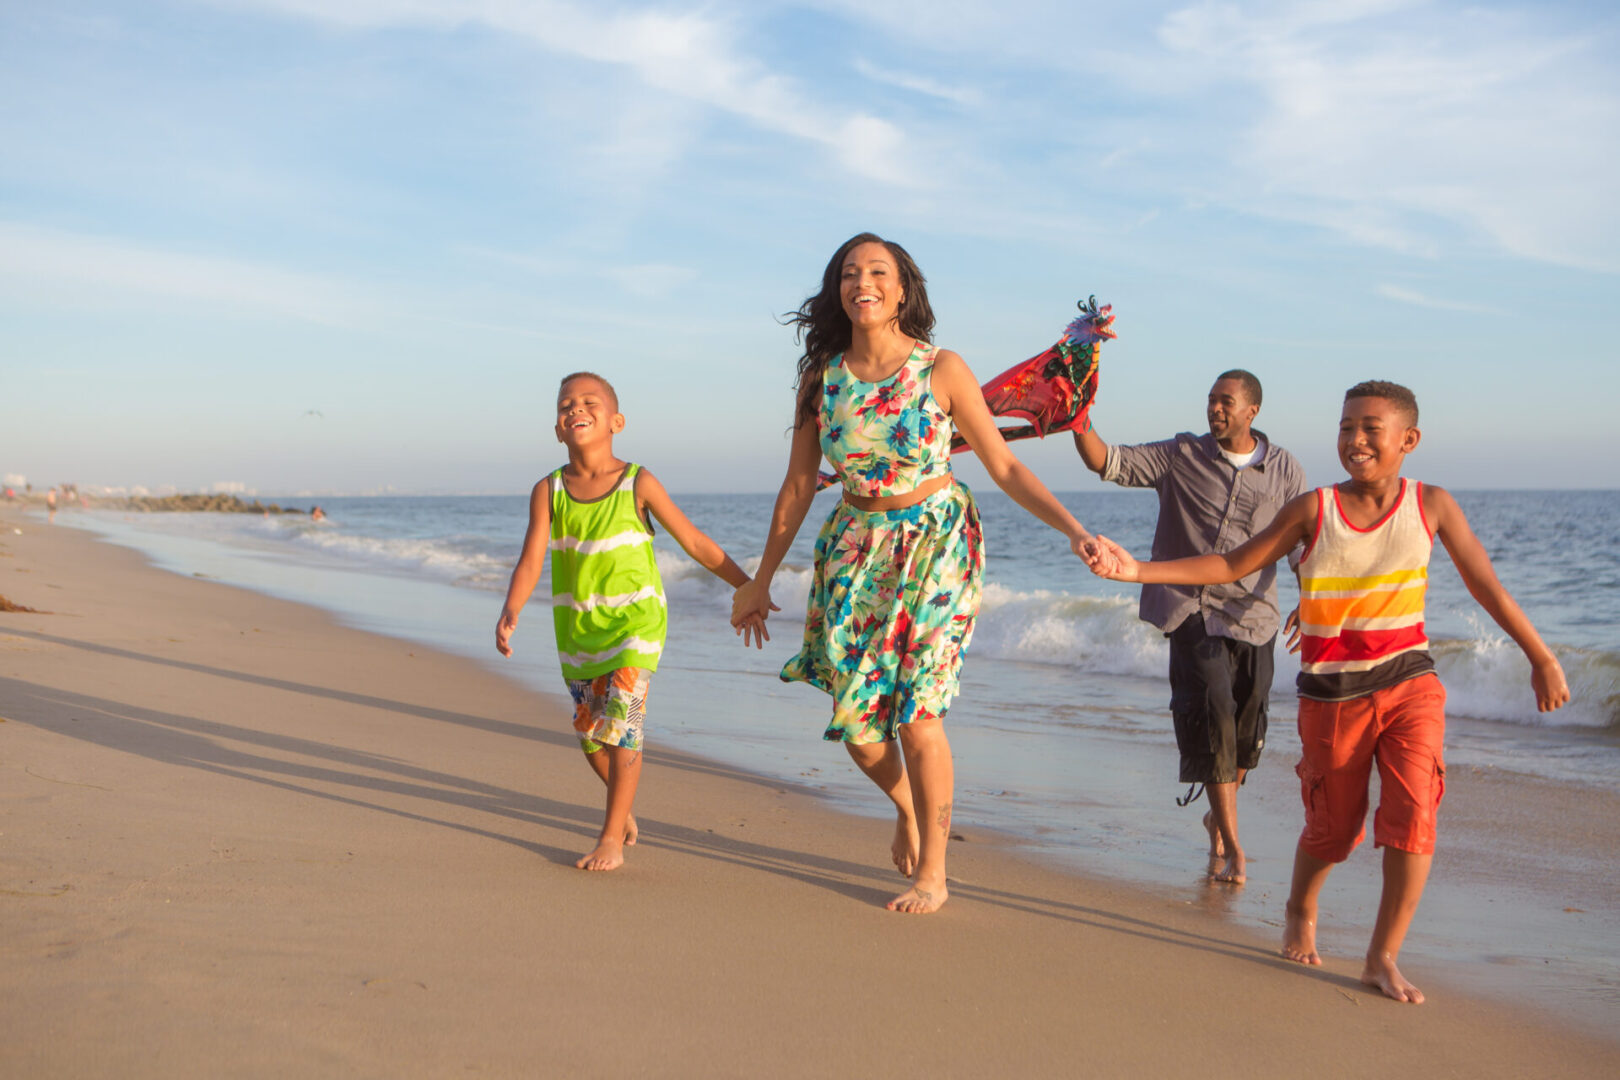 Children,And,Their,Parents,With,Kite,At,The,Beach,Walking